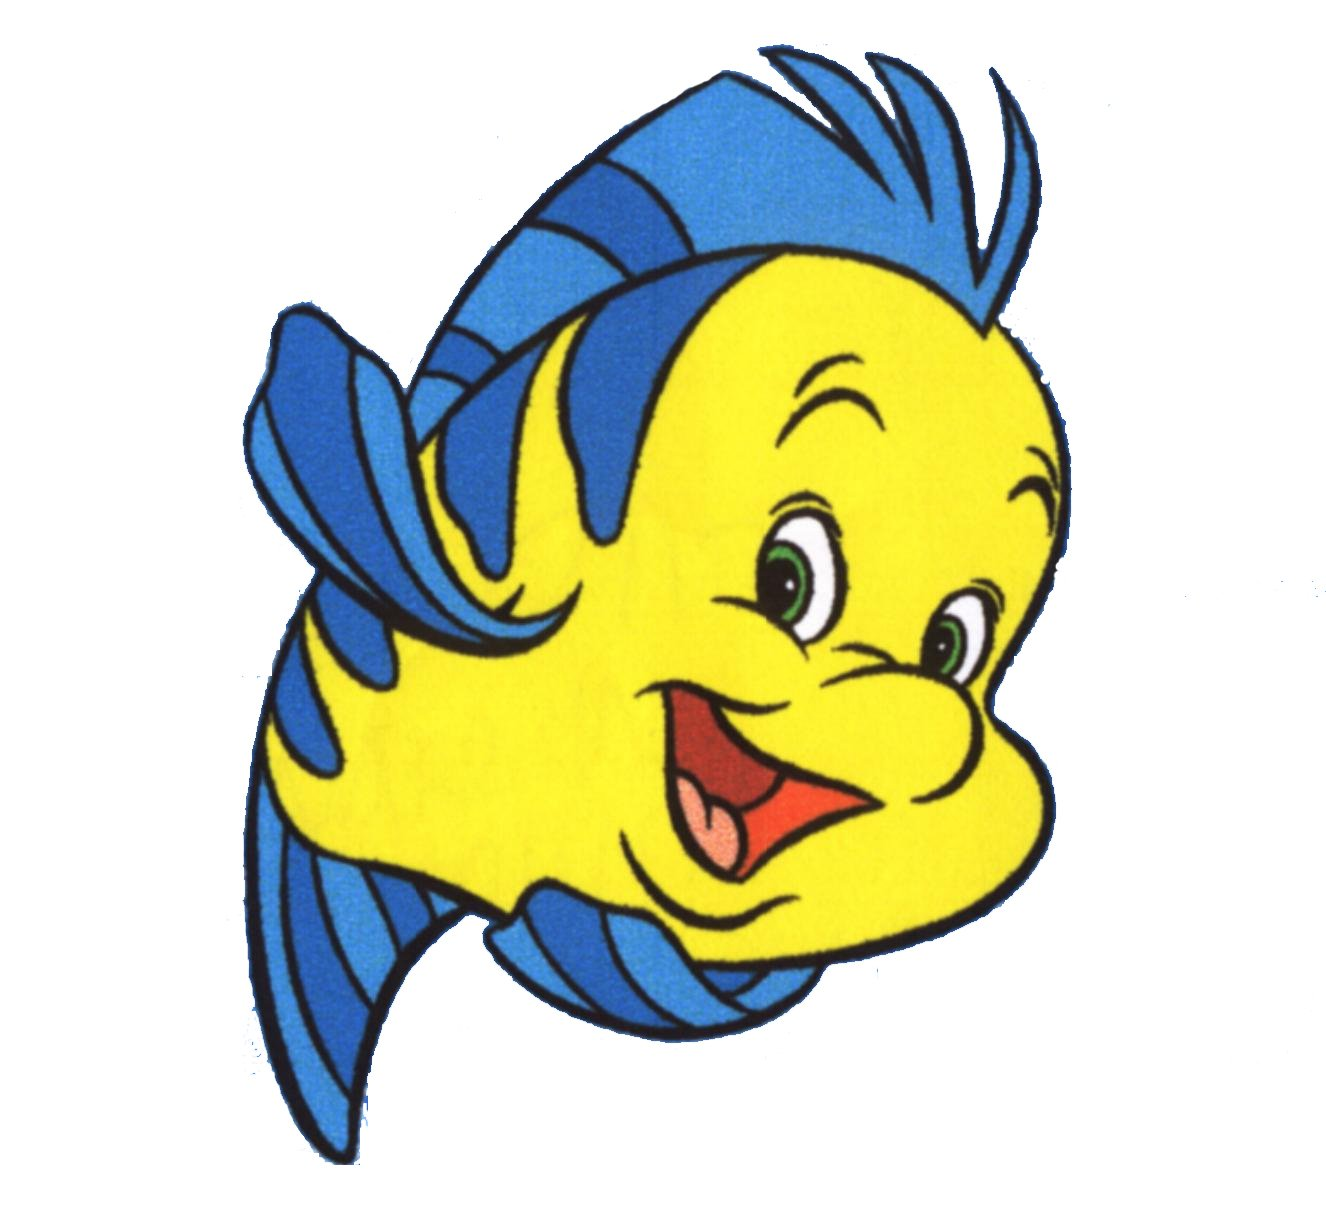 Uncategorized Pictures Of Flounder From The Little Mermaid amazon com the little mermaid flounder wall decal kids sticker cartoon 4 x 5 home kitchen